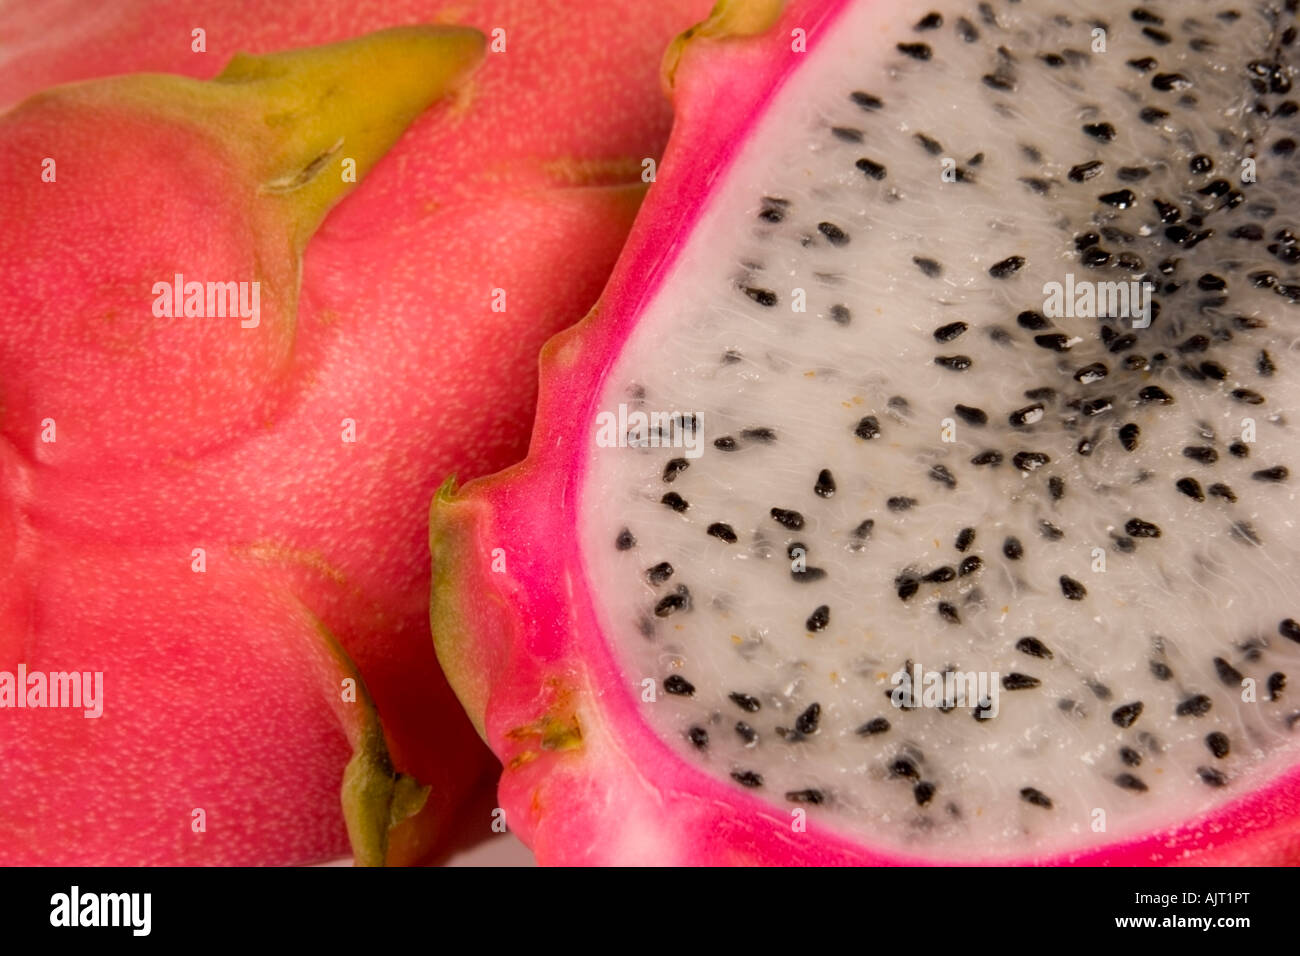 Ripe dragon fruit, hylocereus undatus, cut in half to show the white flesh and seeds - Stock Image